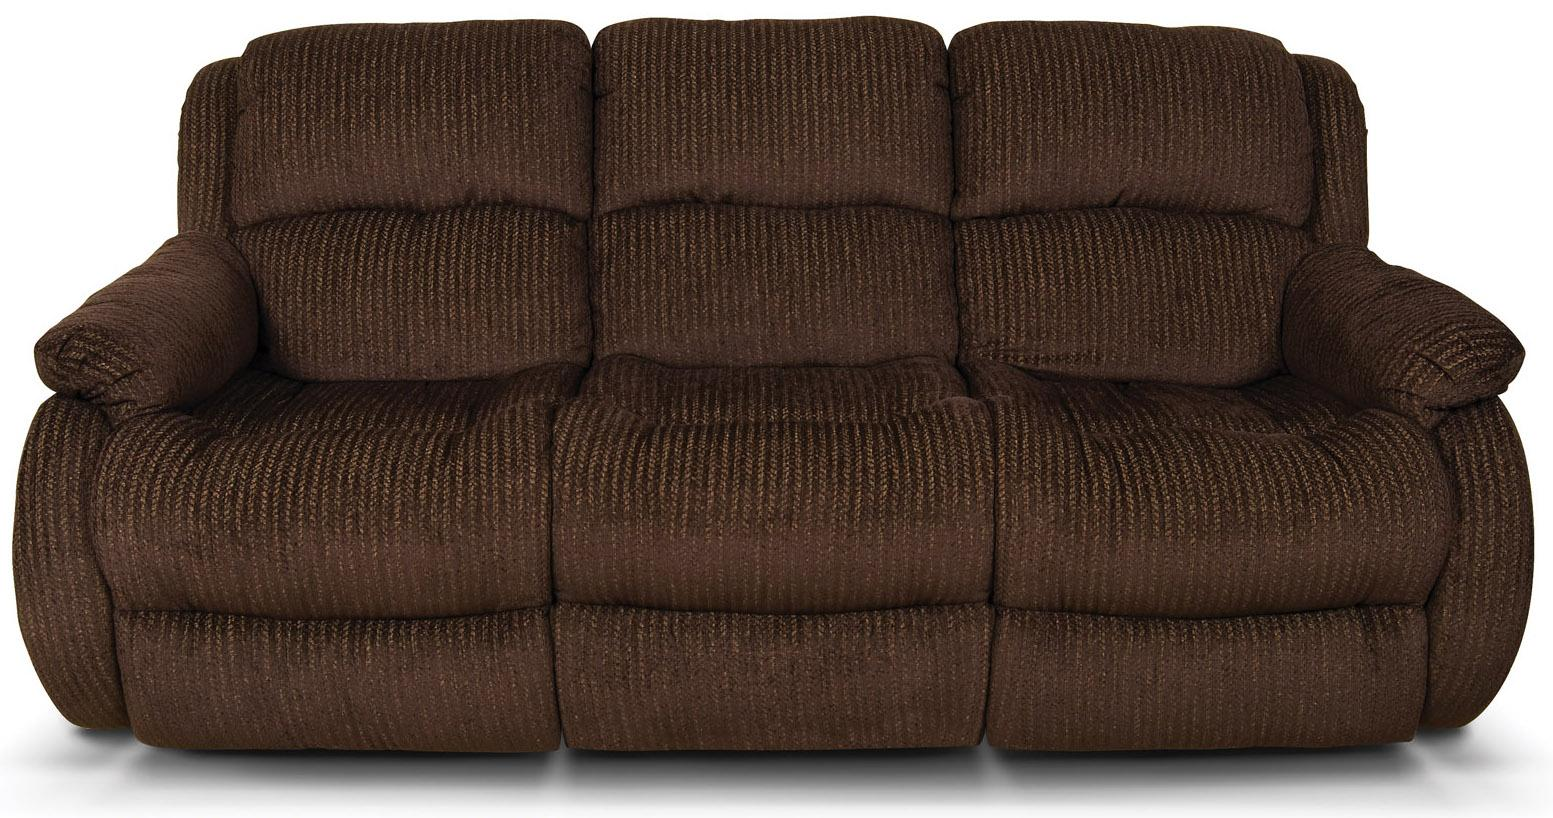 England Hali Reclining Sofa - Item Number: 2011